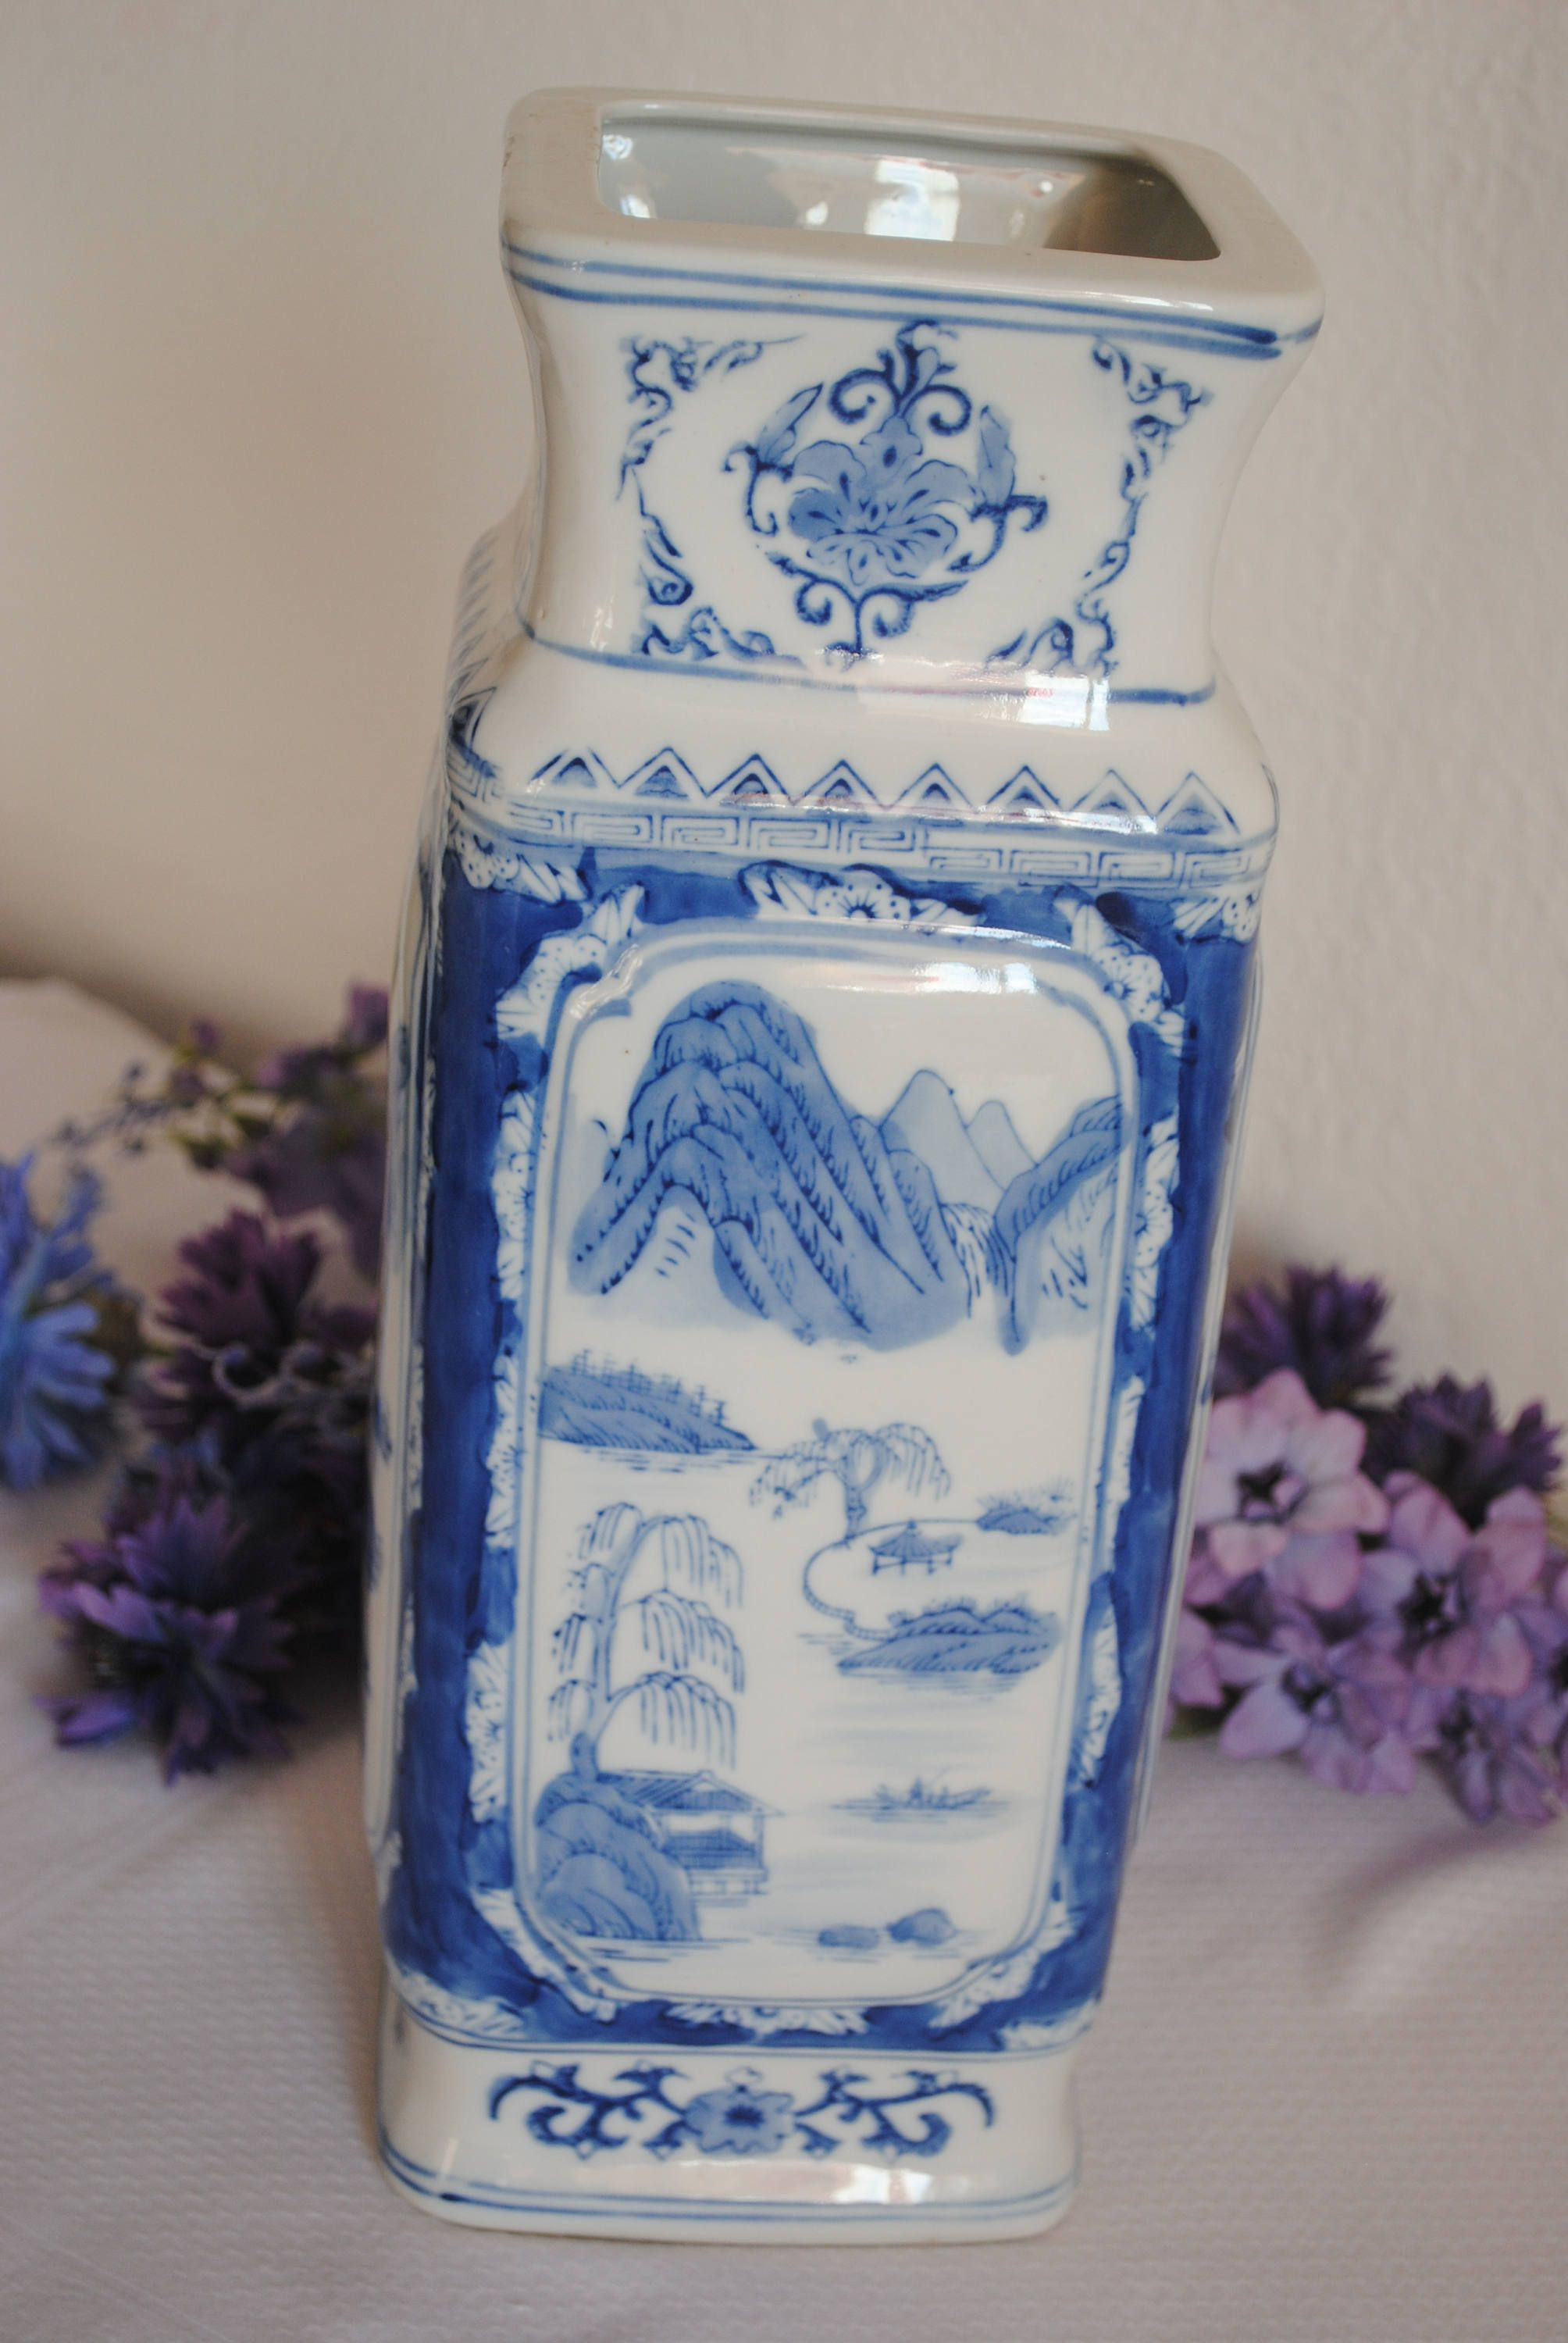 small teal vase of blue square vase gallery 2 chinese porcelain blue white small jars pertaining to blue square vase gallery chinese vase blue white vase unusual square vase oriental of blue